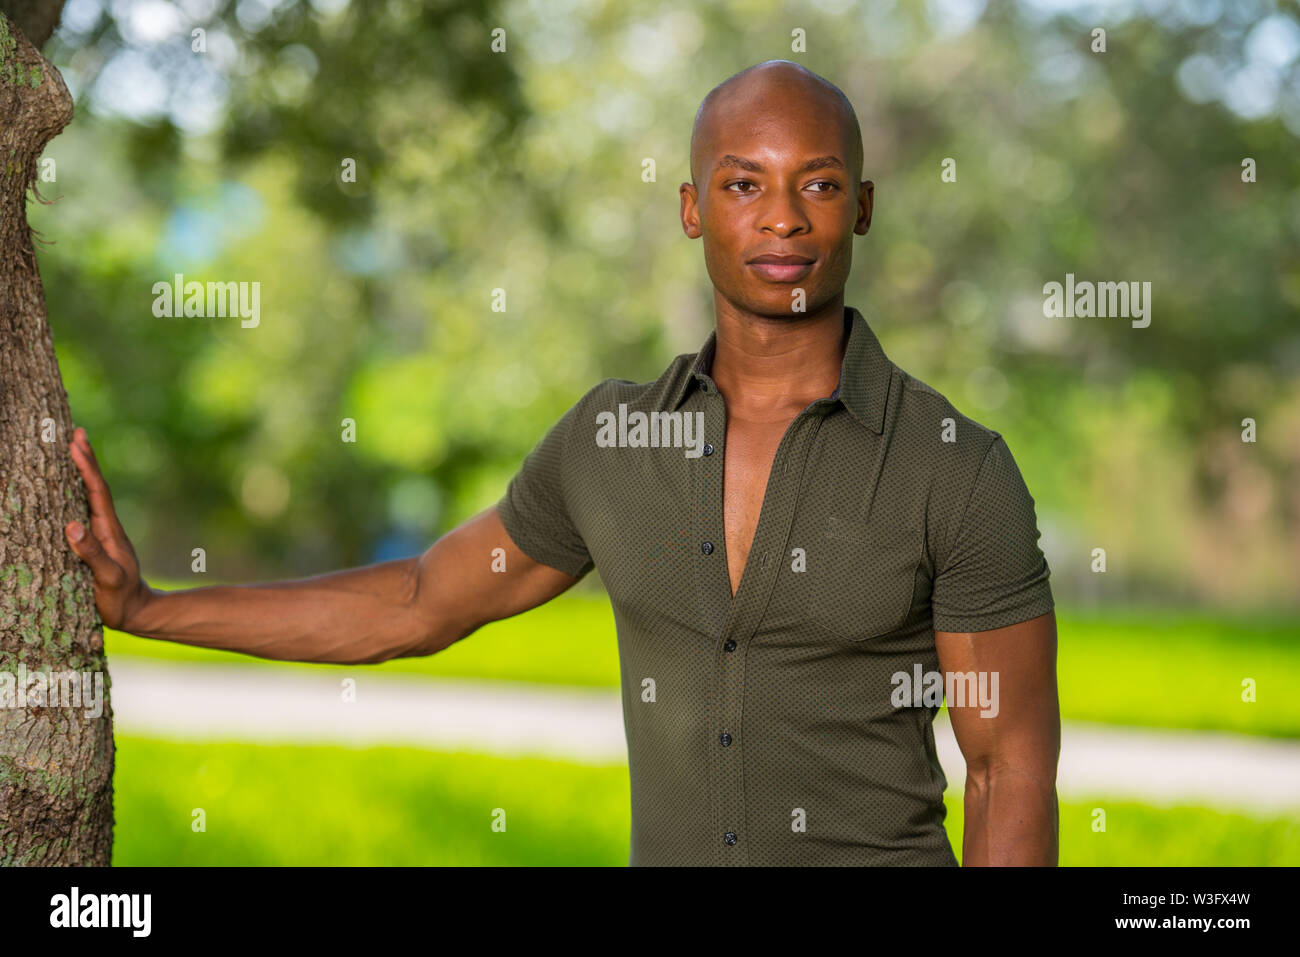 Handsome young African American man posing with hand on tree in the park. Mans shirt is unbuttoned to show chest as man glances away from camera - Stock Image